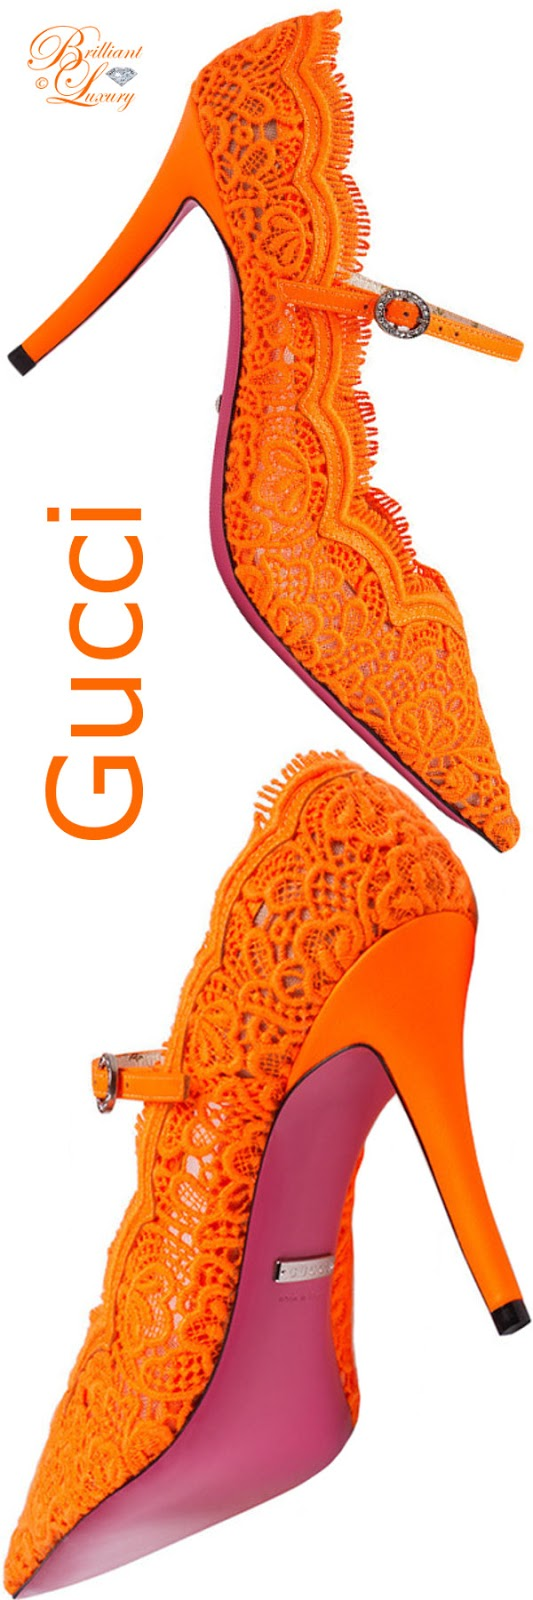 Brilliant Luxury ♦ Gucci Virginia lace pumps #orange